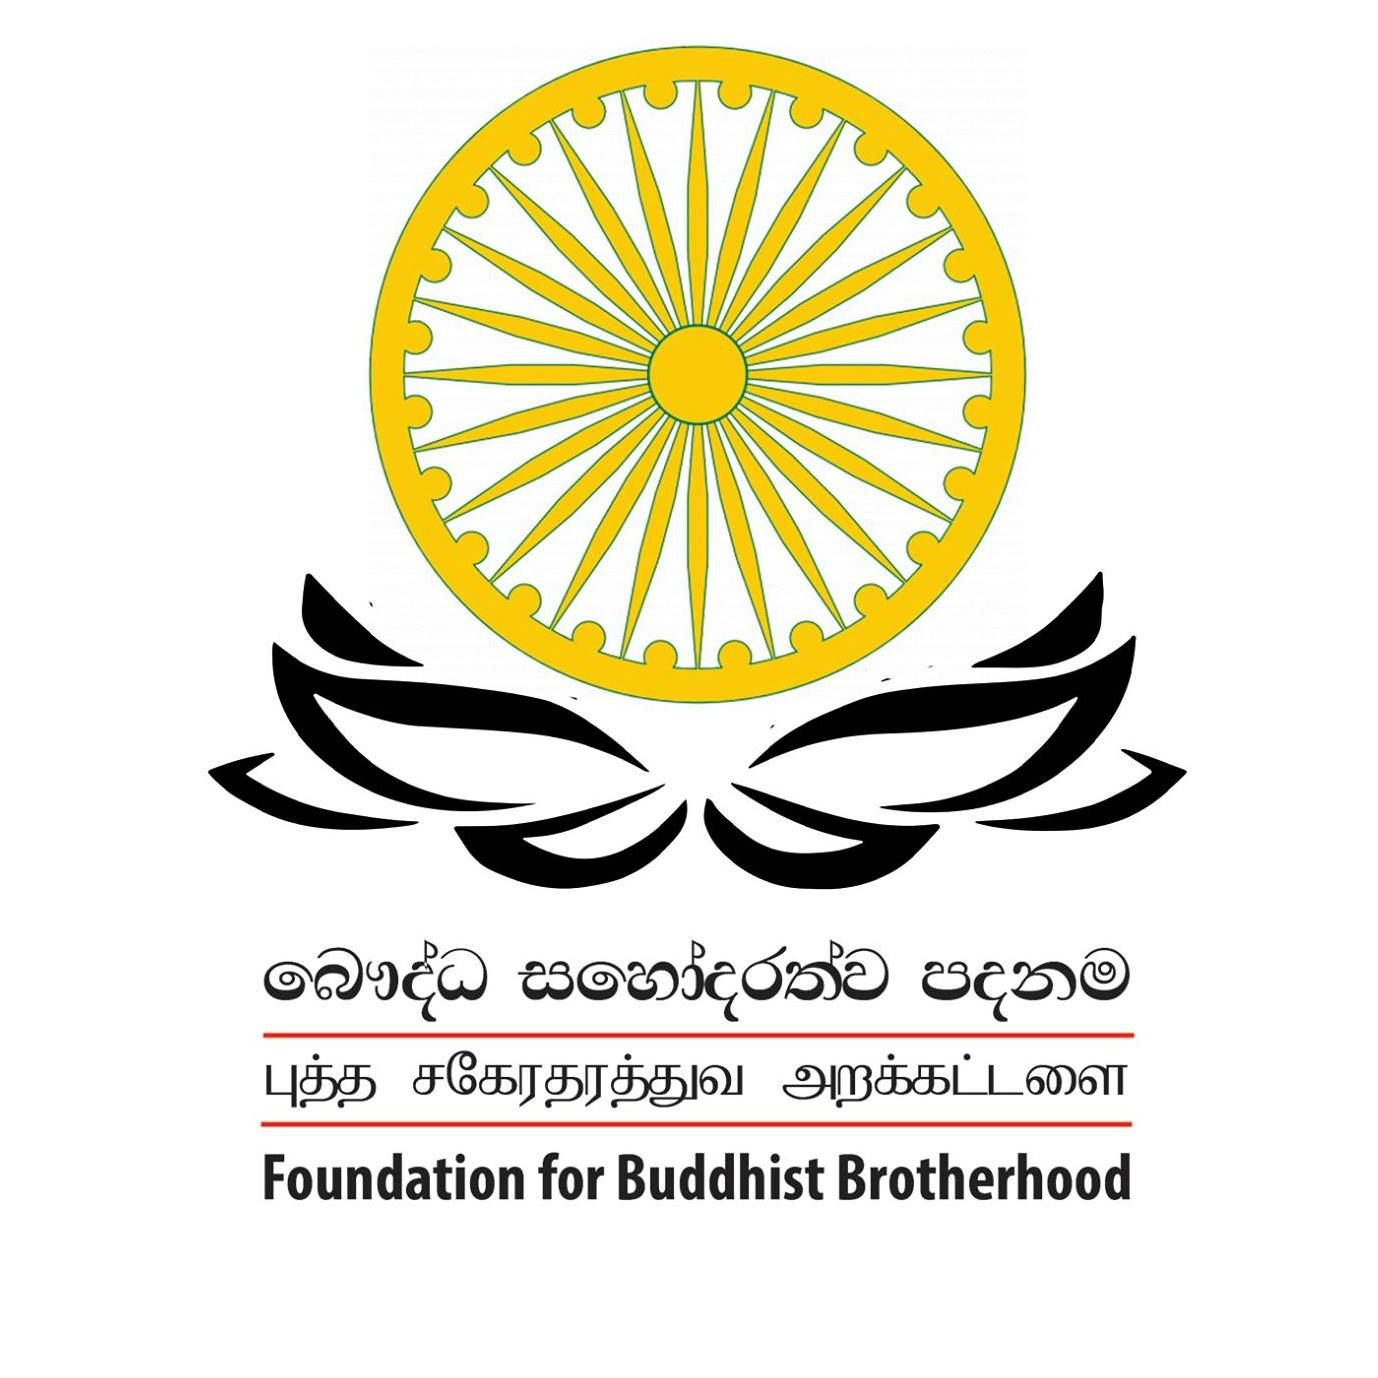 Foundation for Buddhist Brotherhood commends India's work for maintaining ties with neighbours!